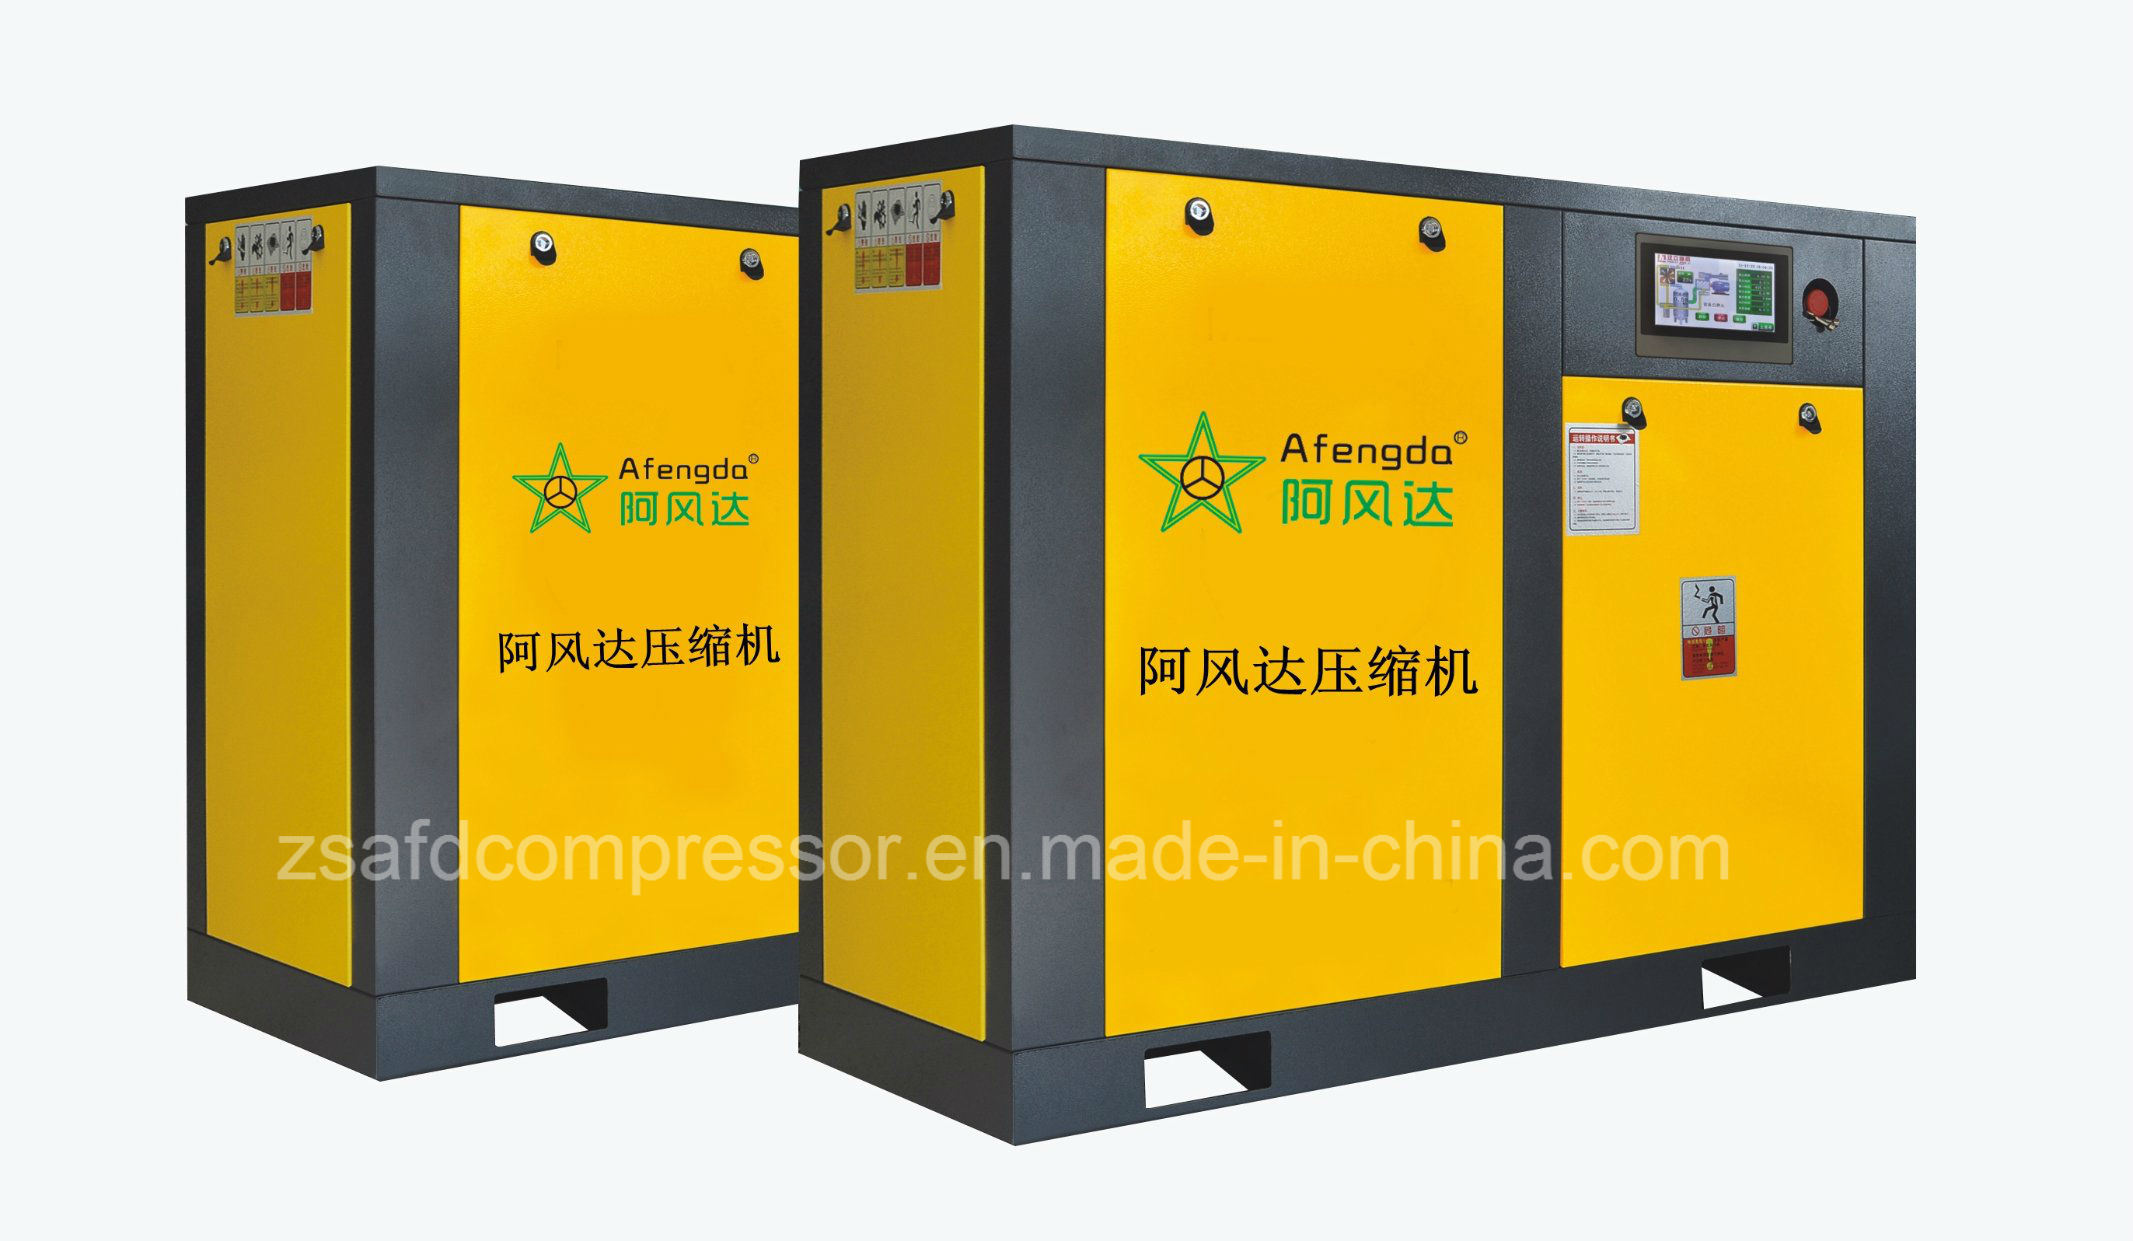 Afengda 50HP/37kw Industrial Oil Lubricated Twin-Screw Air Compressor